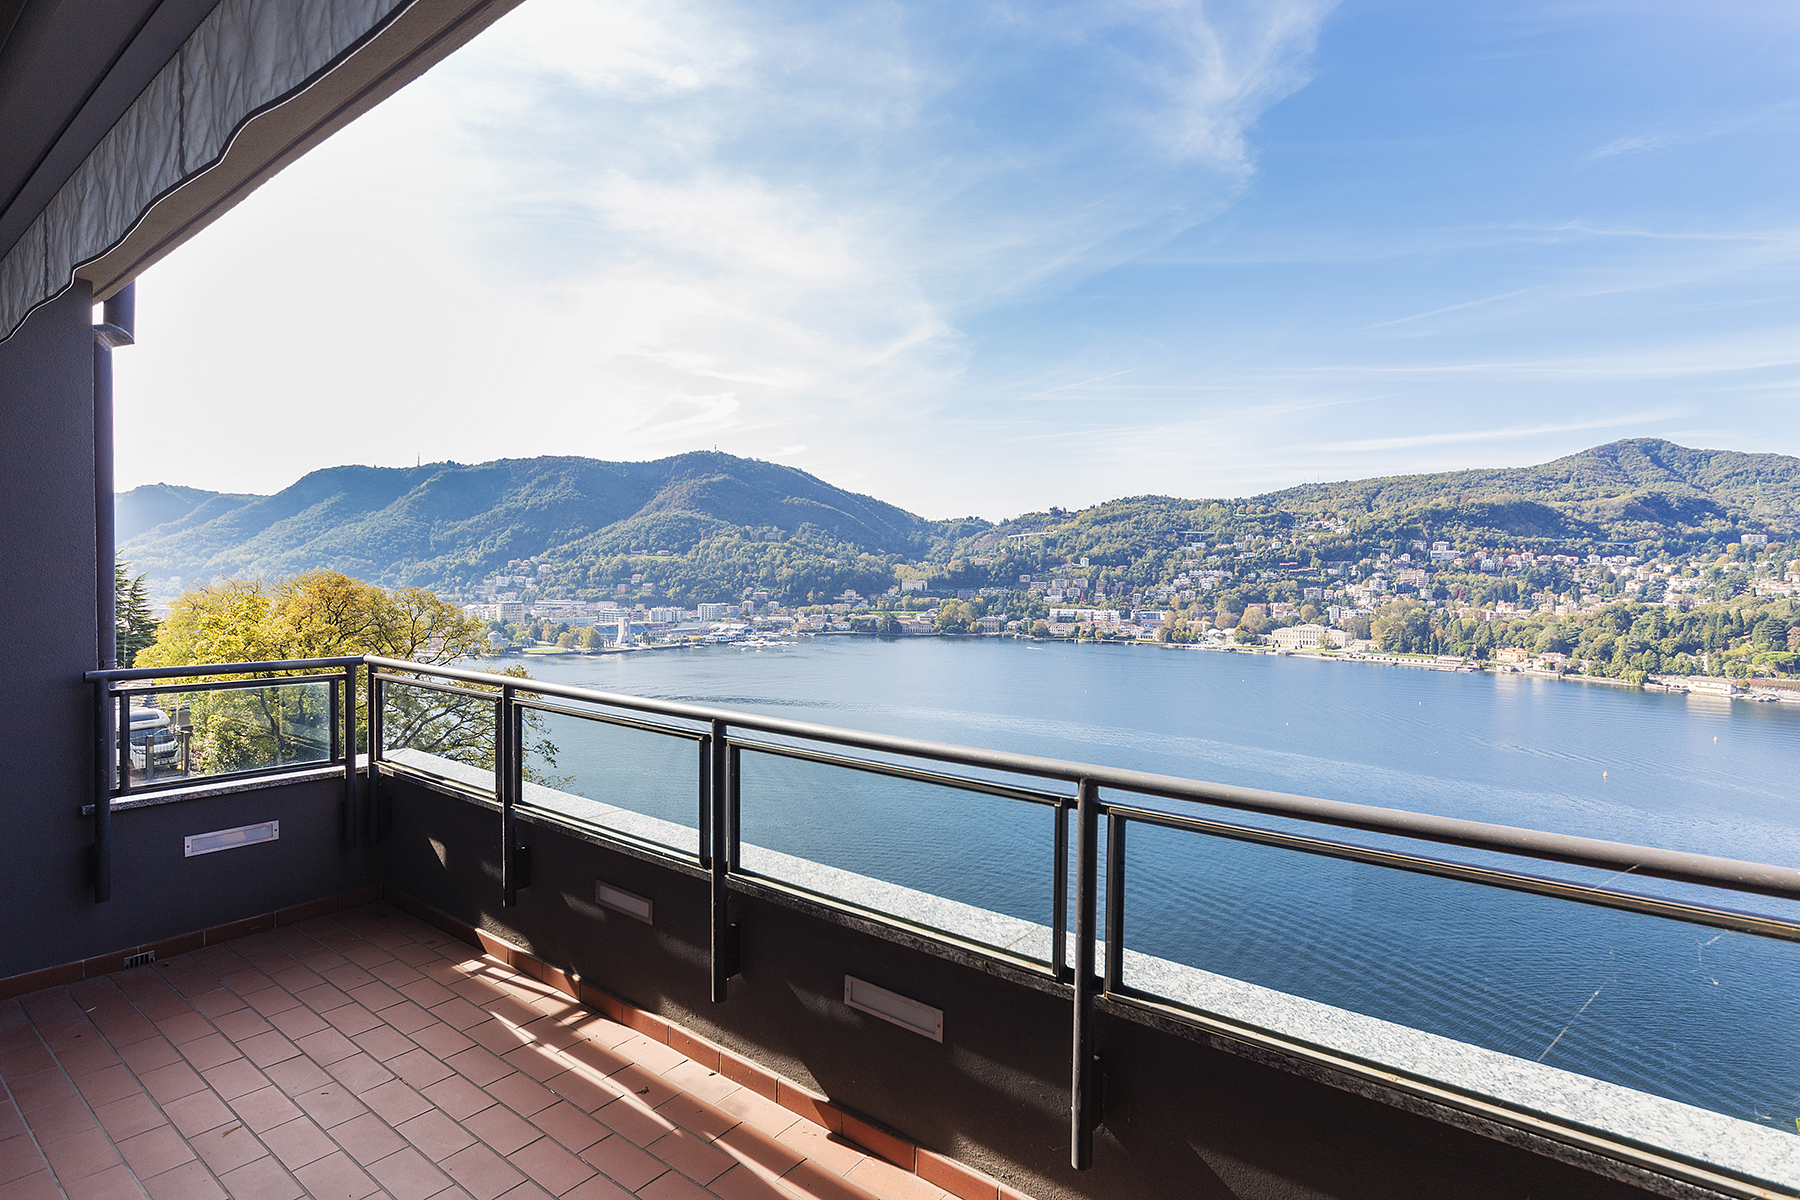 Apartment for Sale at Charming apartment in the most beautiful area of the city of Como Como, Como, Italy